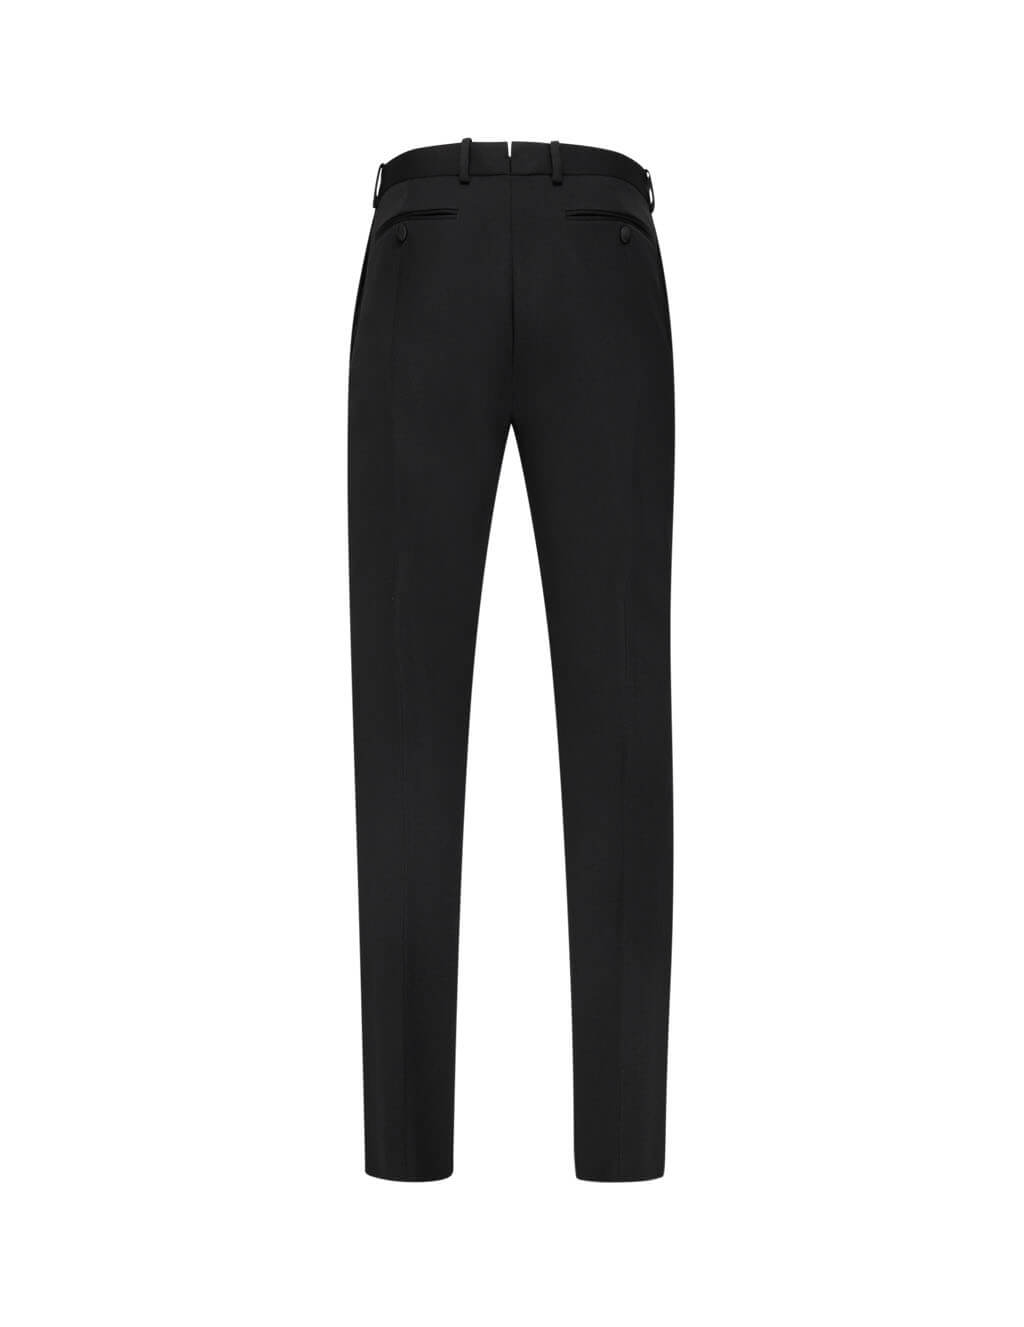 Alexander McQueen Men's Giulio Fashion Black Silk Insert Trousers 599305QOV011000